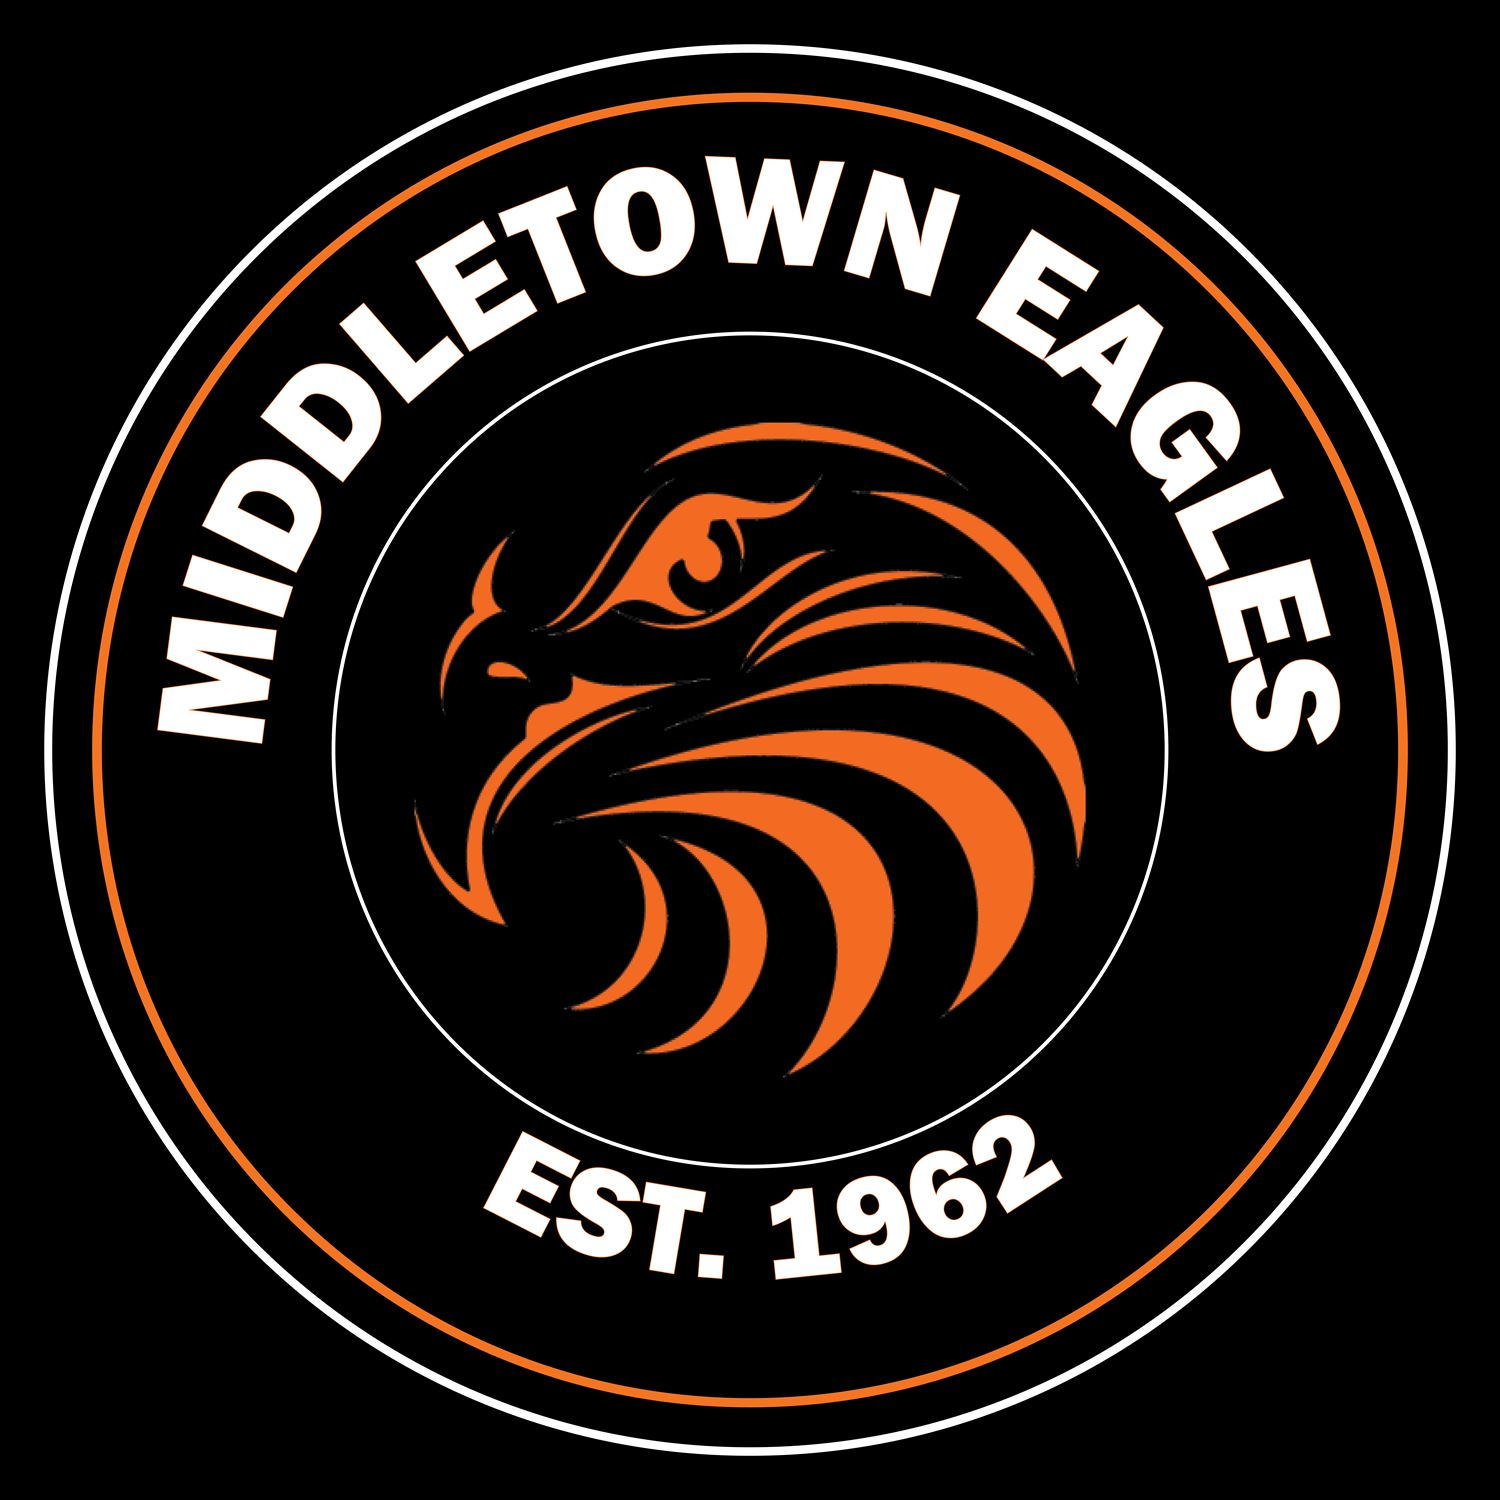 Middletown Eagles - Eagles 2017 Extra Account